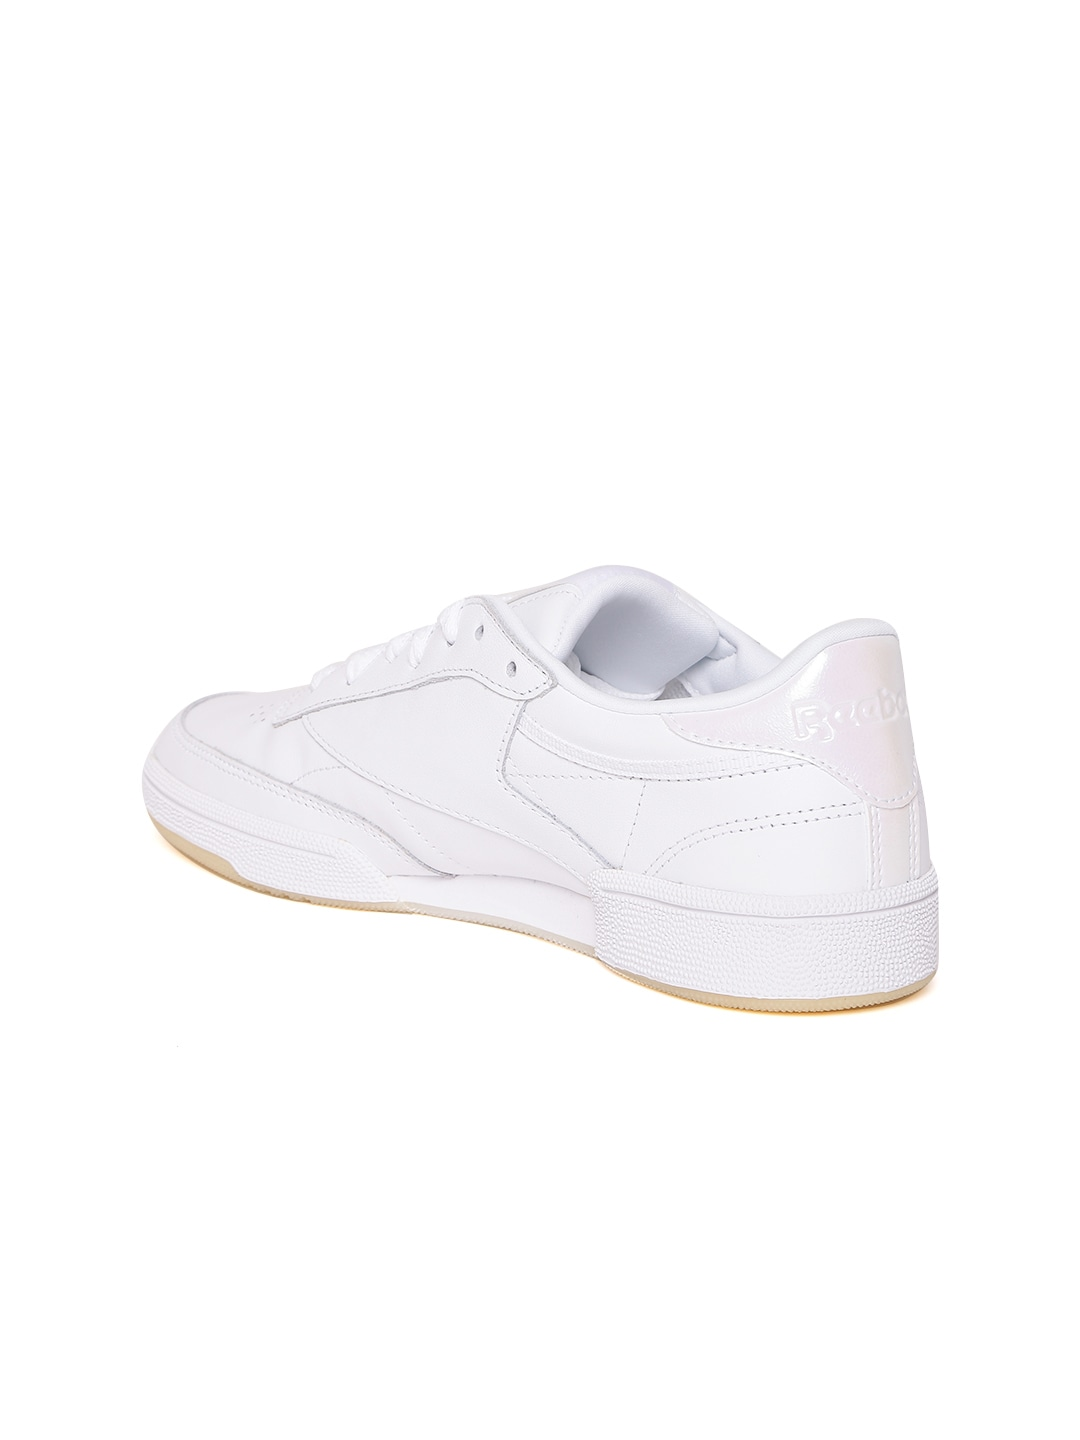 reebok shoes classic white. reebok shoes classic white ,